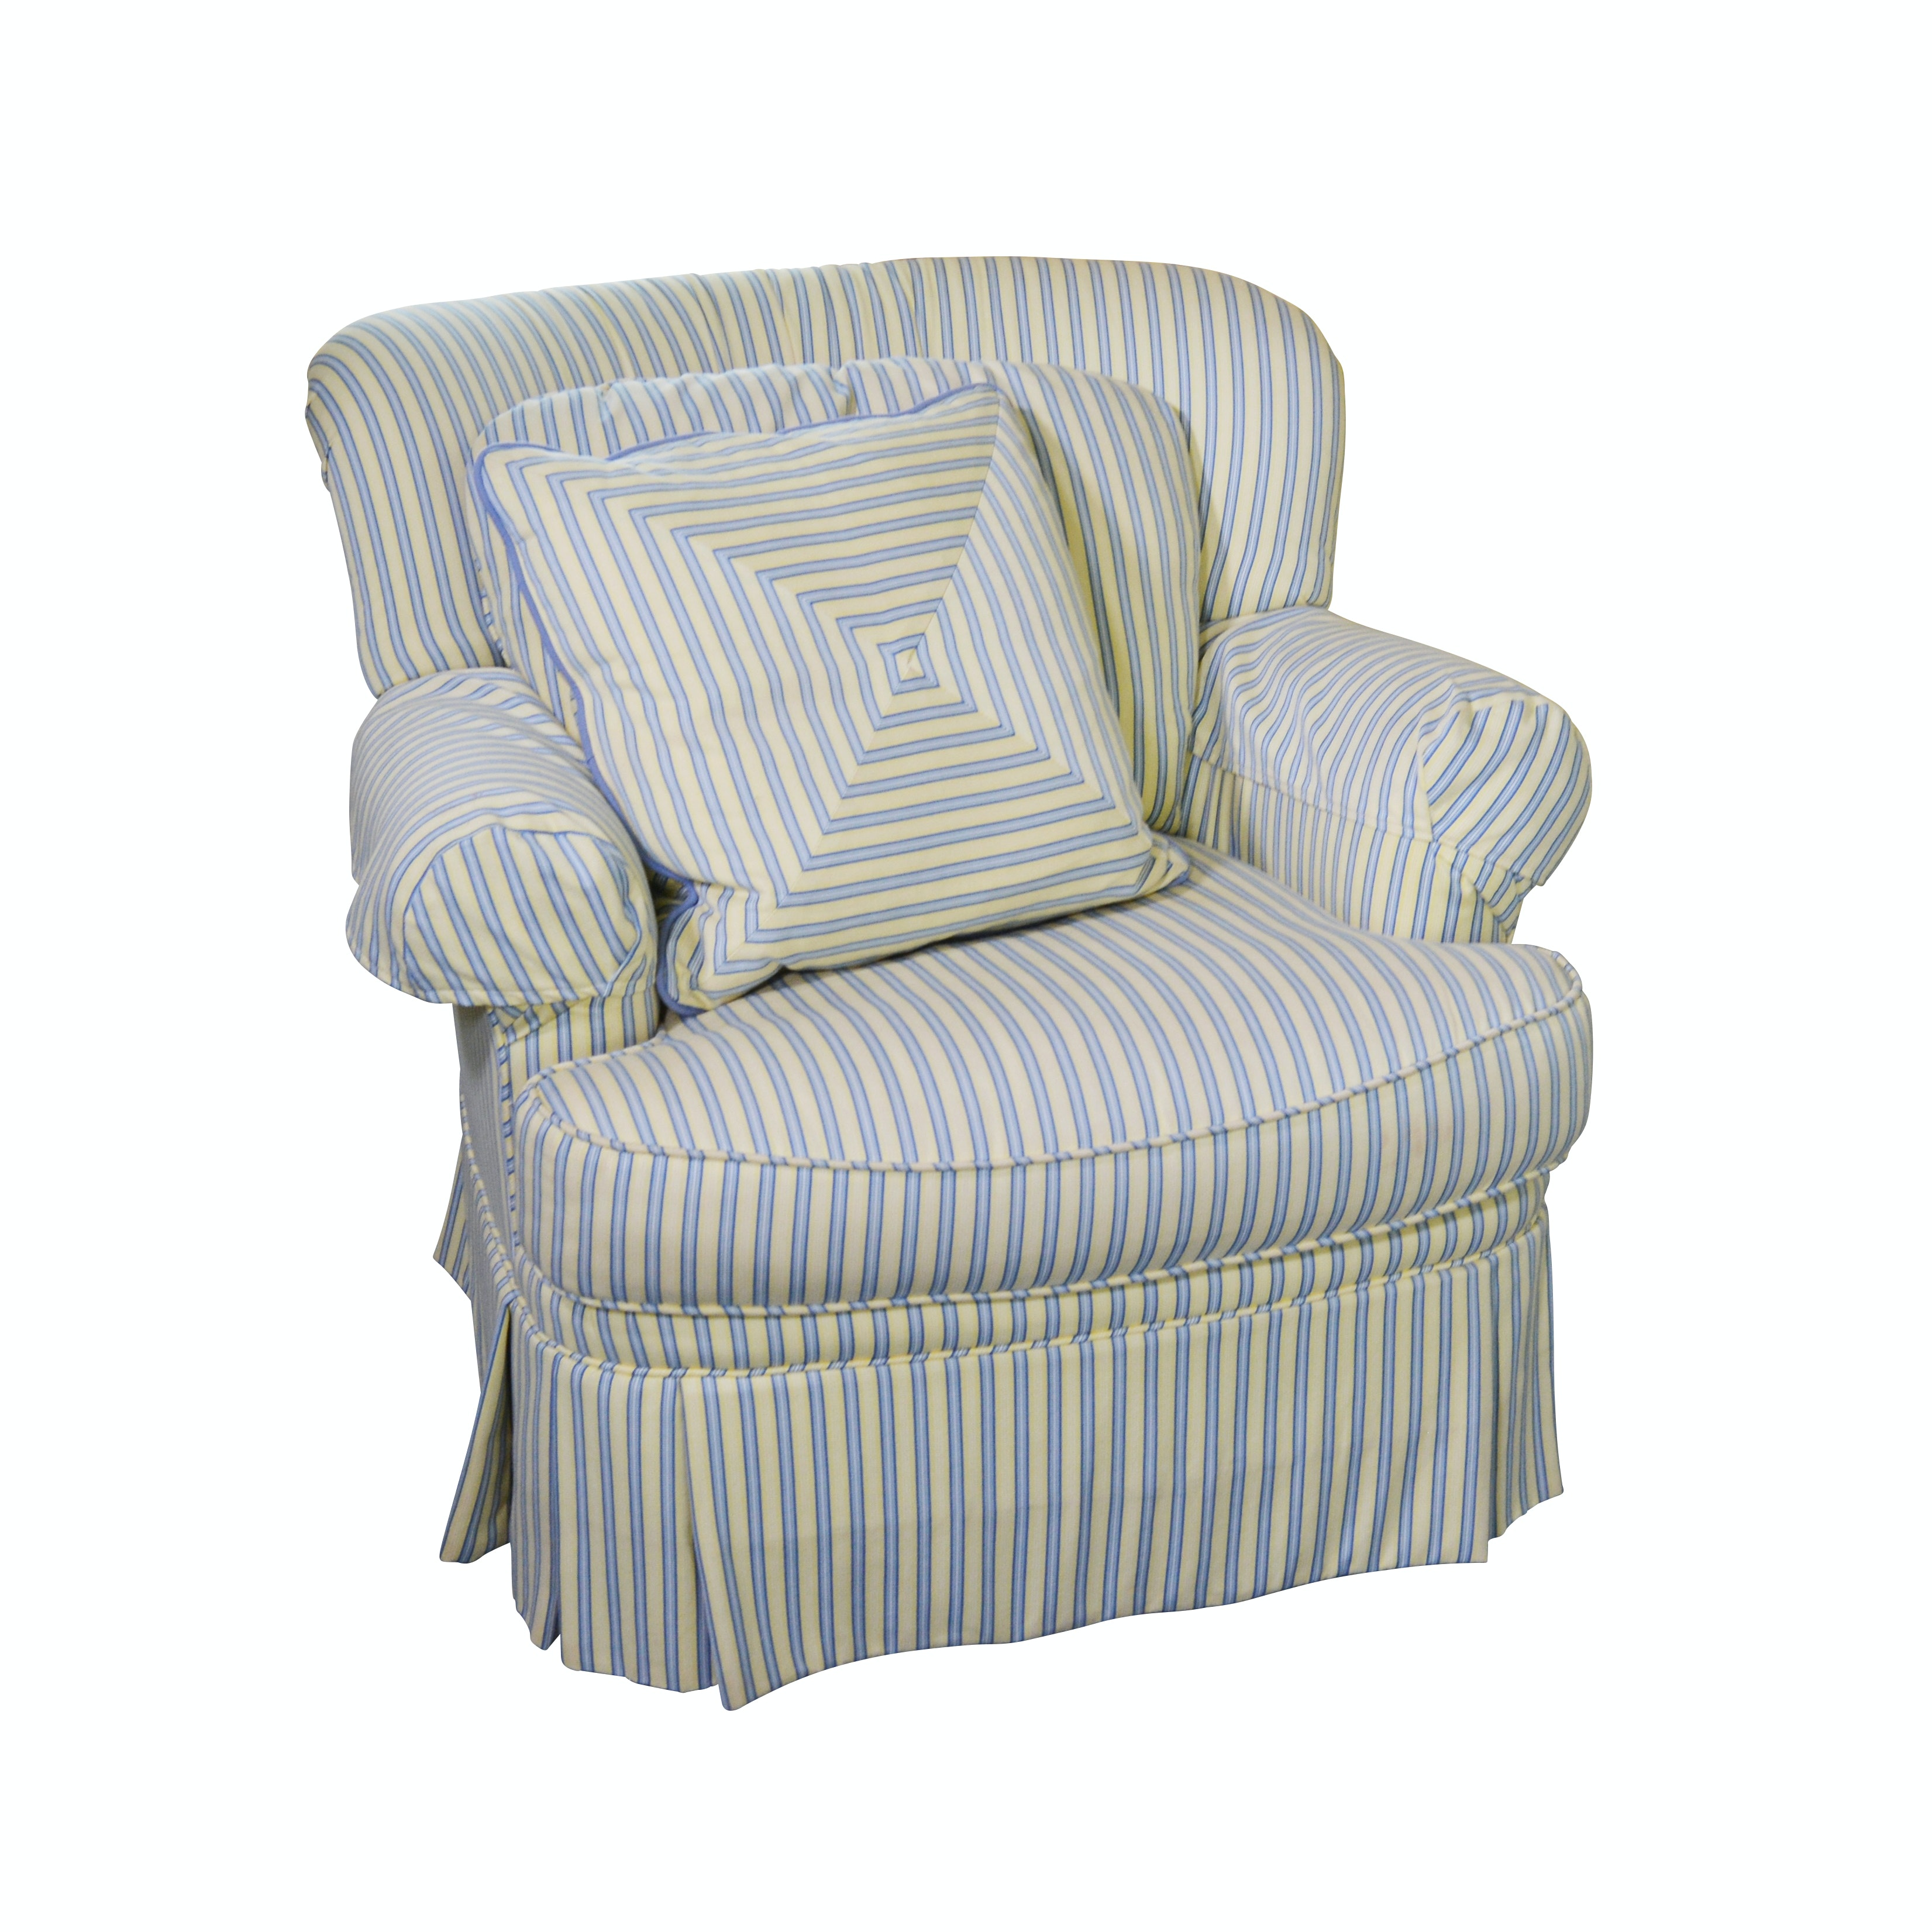 Pearson Striped Upholstered Swivel Lounge Chair, Contemporary